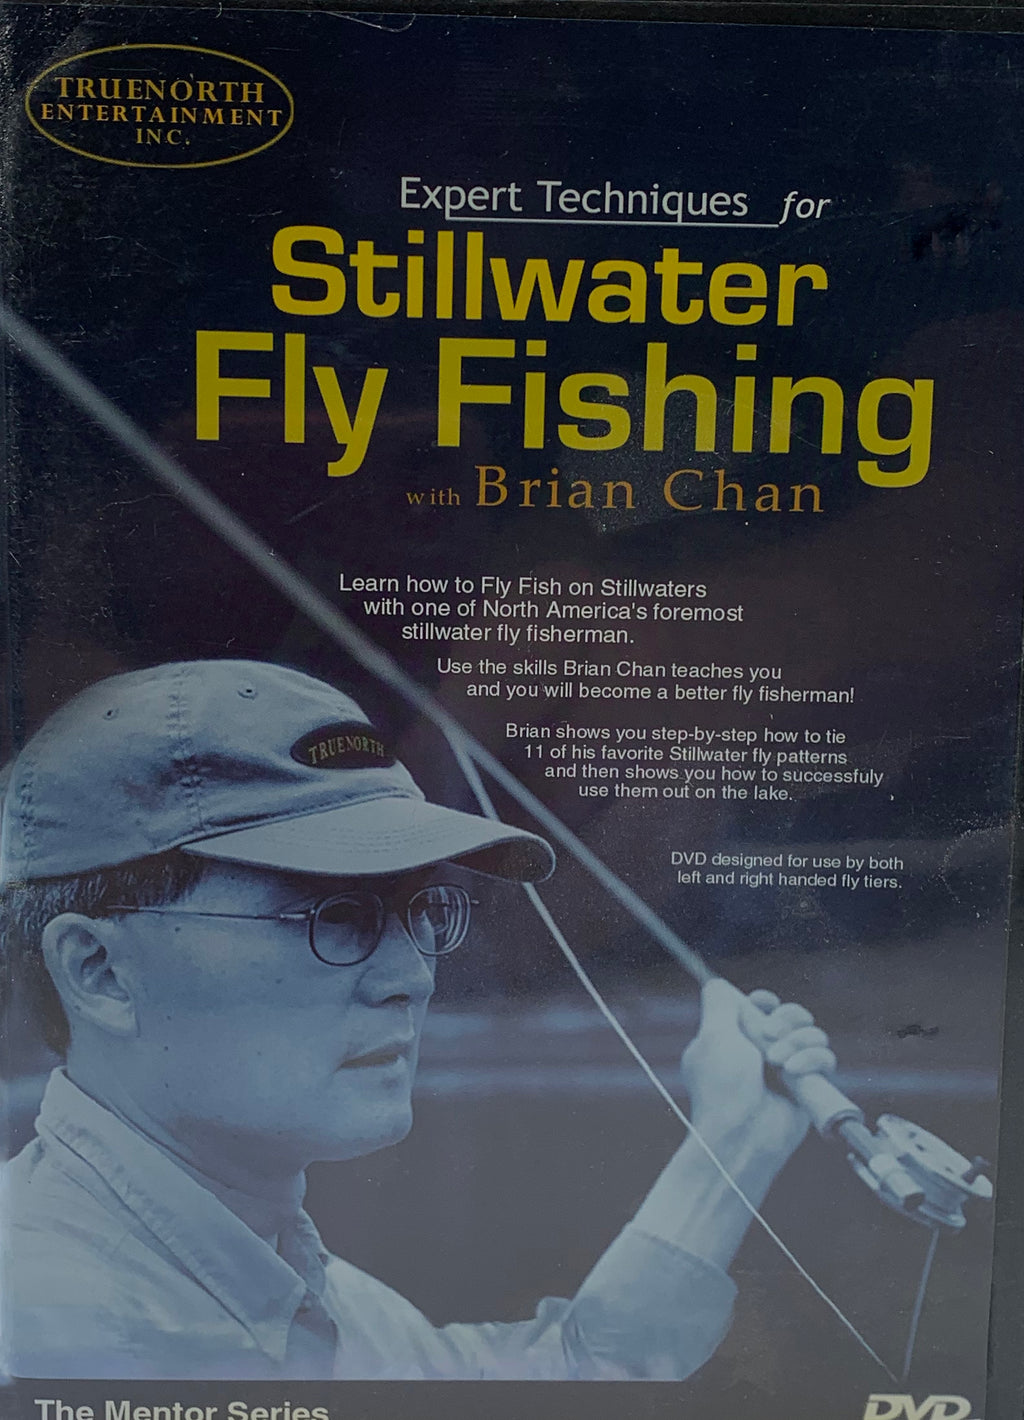 EXPERT TECHNIQUES STILLWATER FLY FISHING DVD